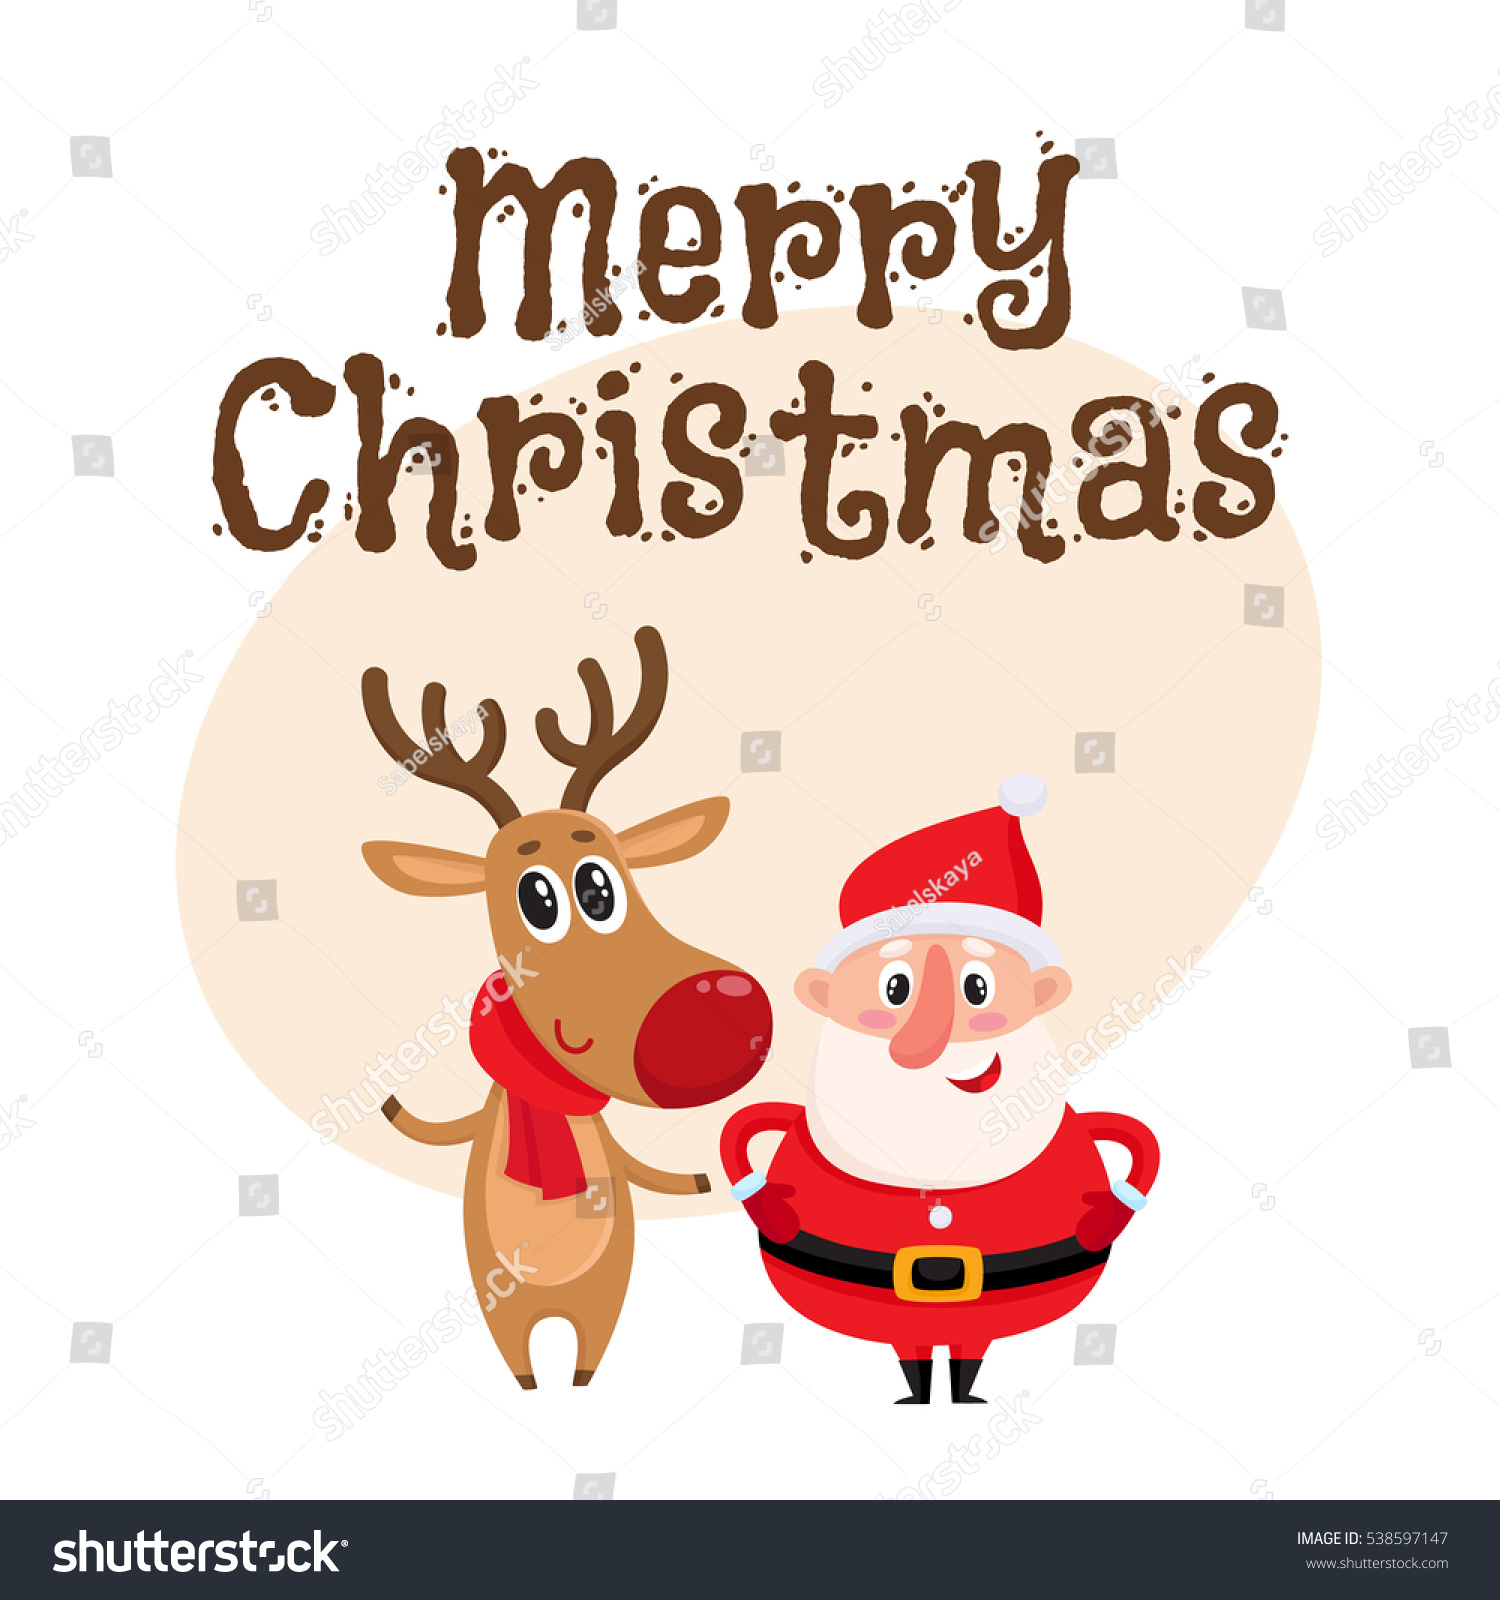 Merry christmas greeting card template funny stock photo photo merry christmas greeting card template with funny santa claus and reindeer in red scarf standing together m4hsunfo